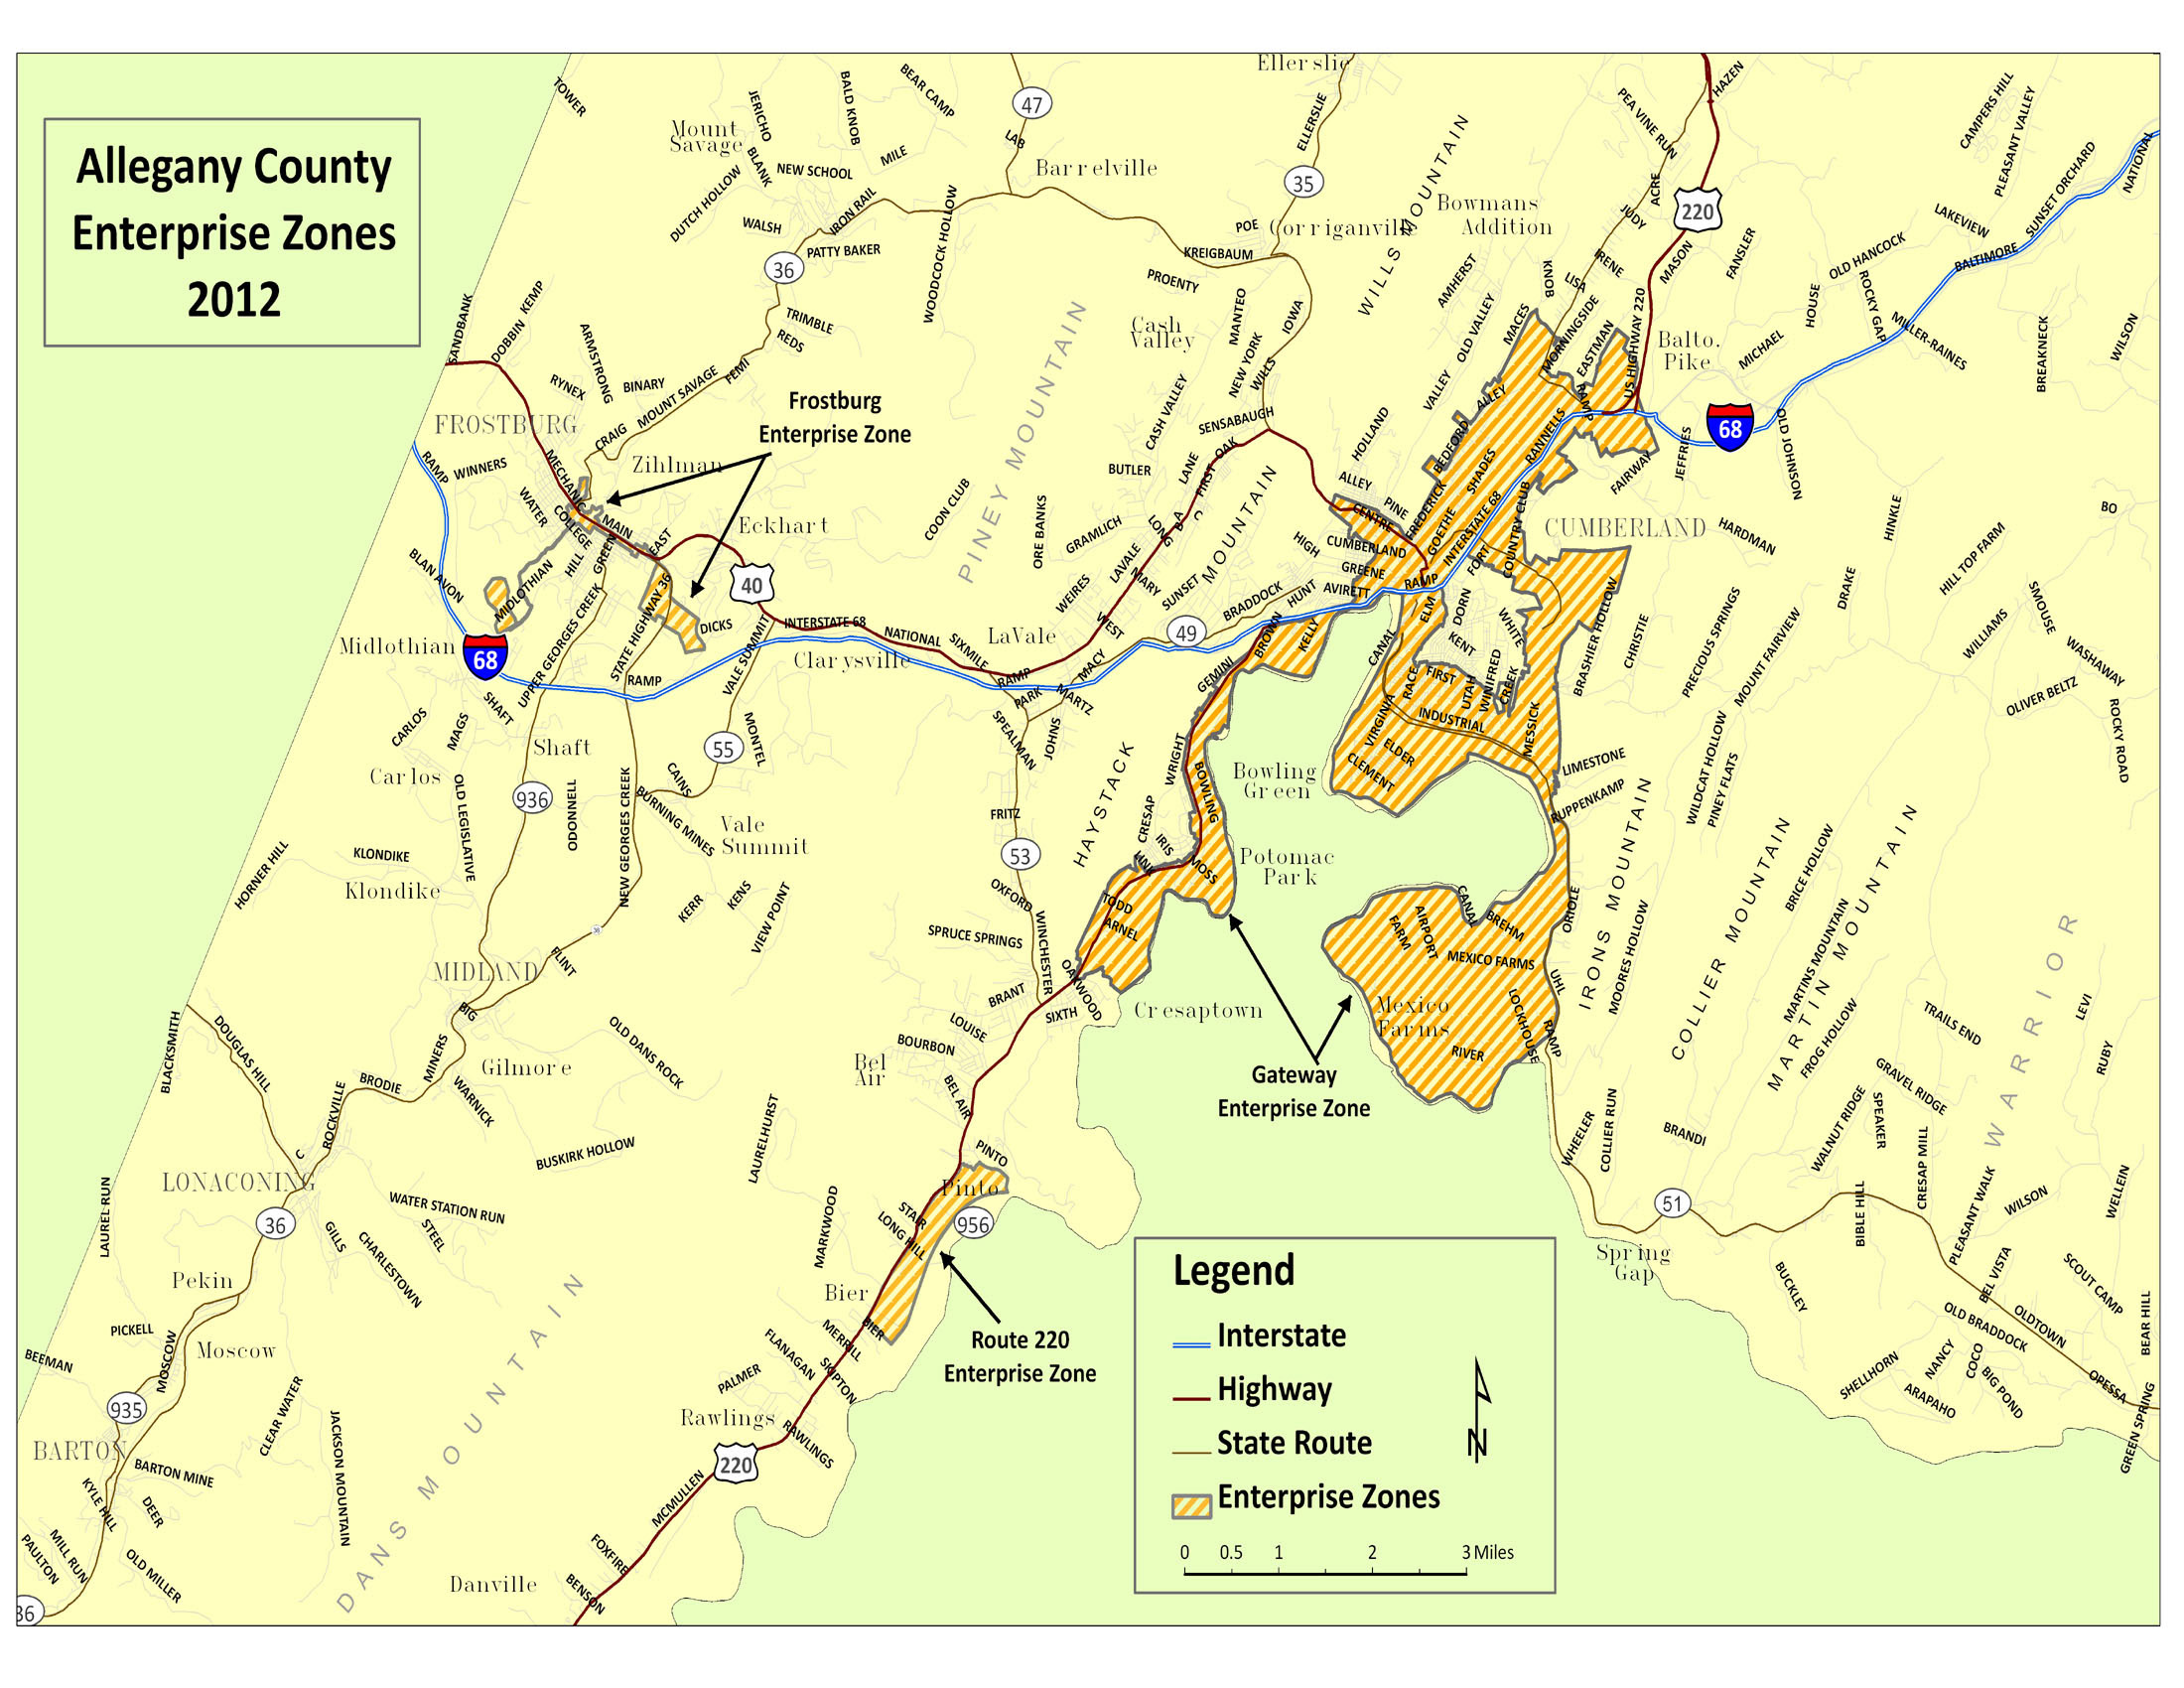 Allegany County Tax Maps Enterprise Zone | Allegany County Department of Economic and